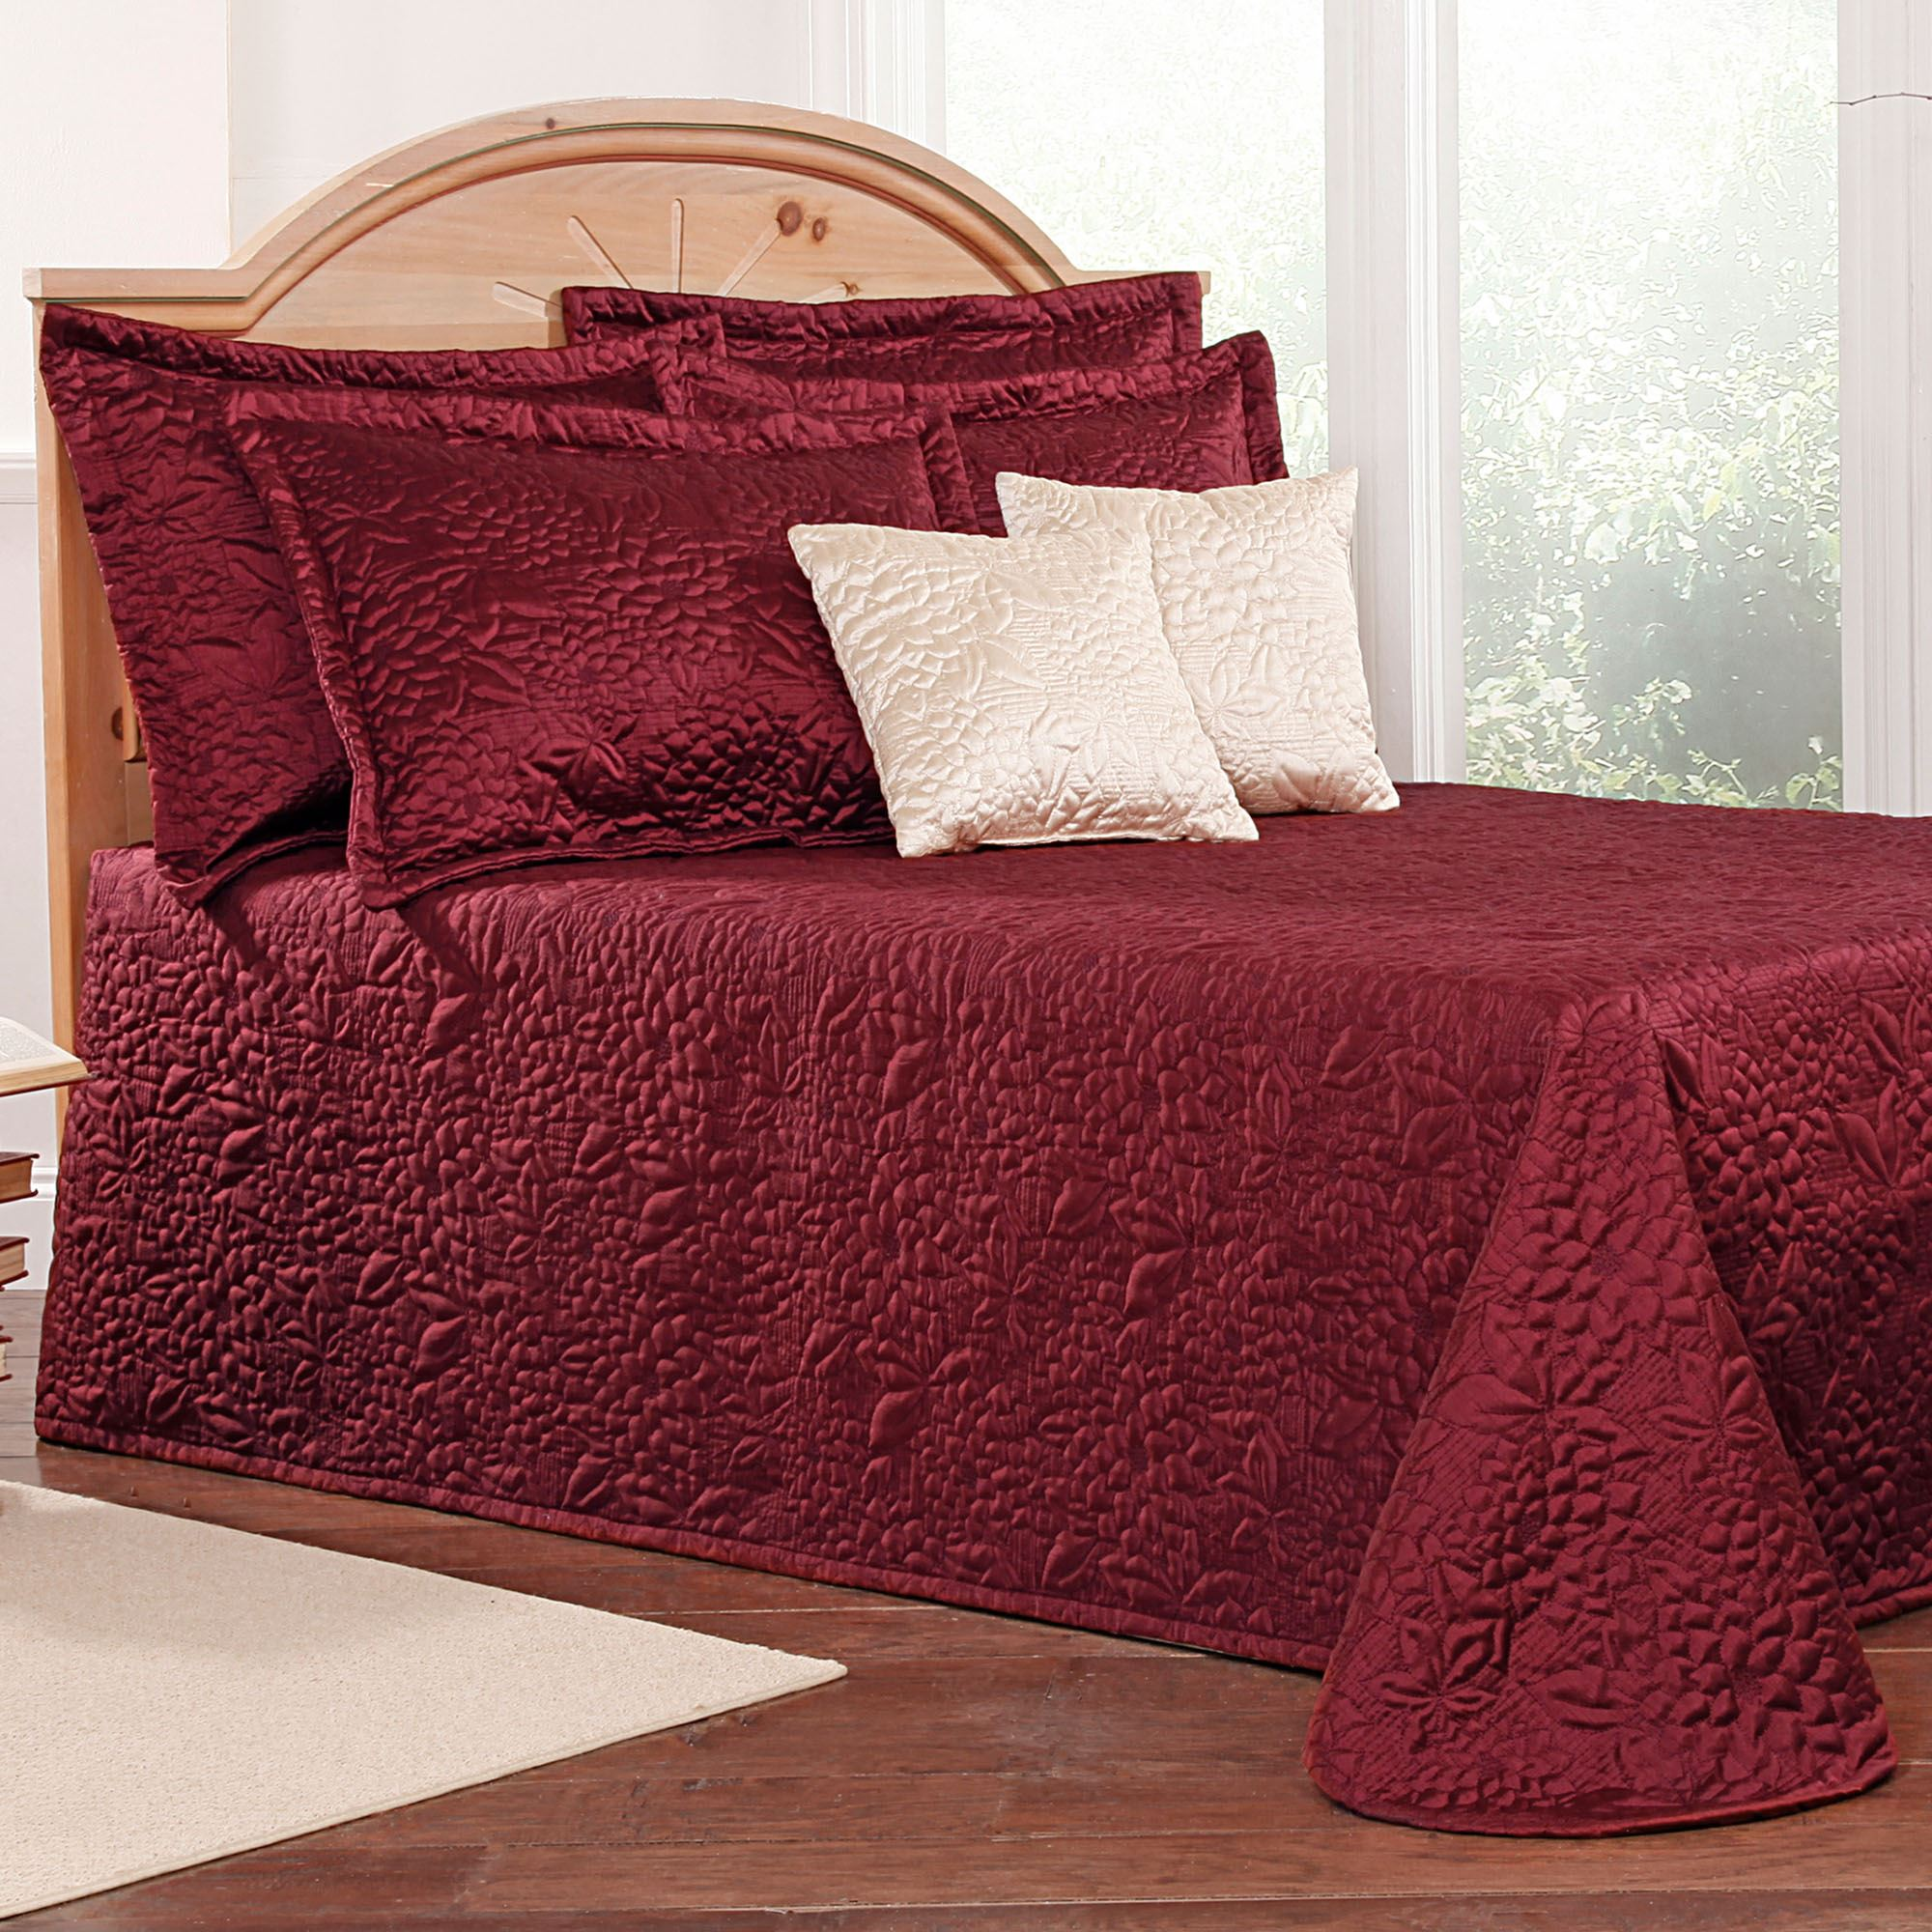 Gardenia Floral Quilted Bedspread Bedding : quilted bed spreads - Adamdwight.com